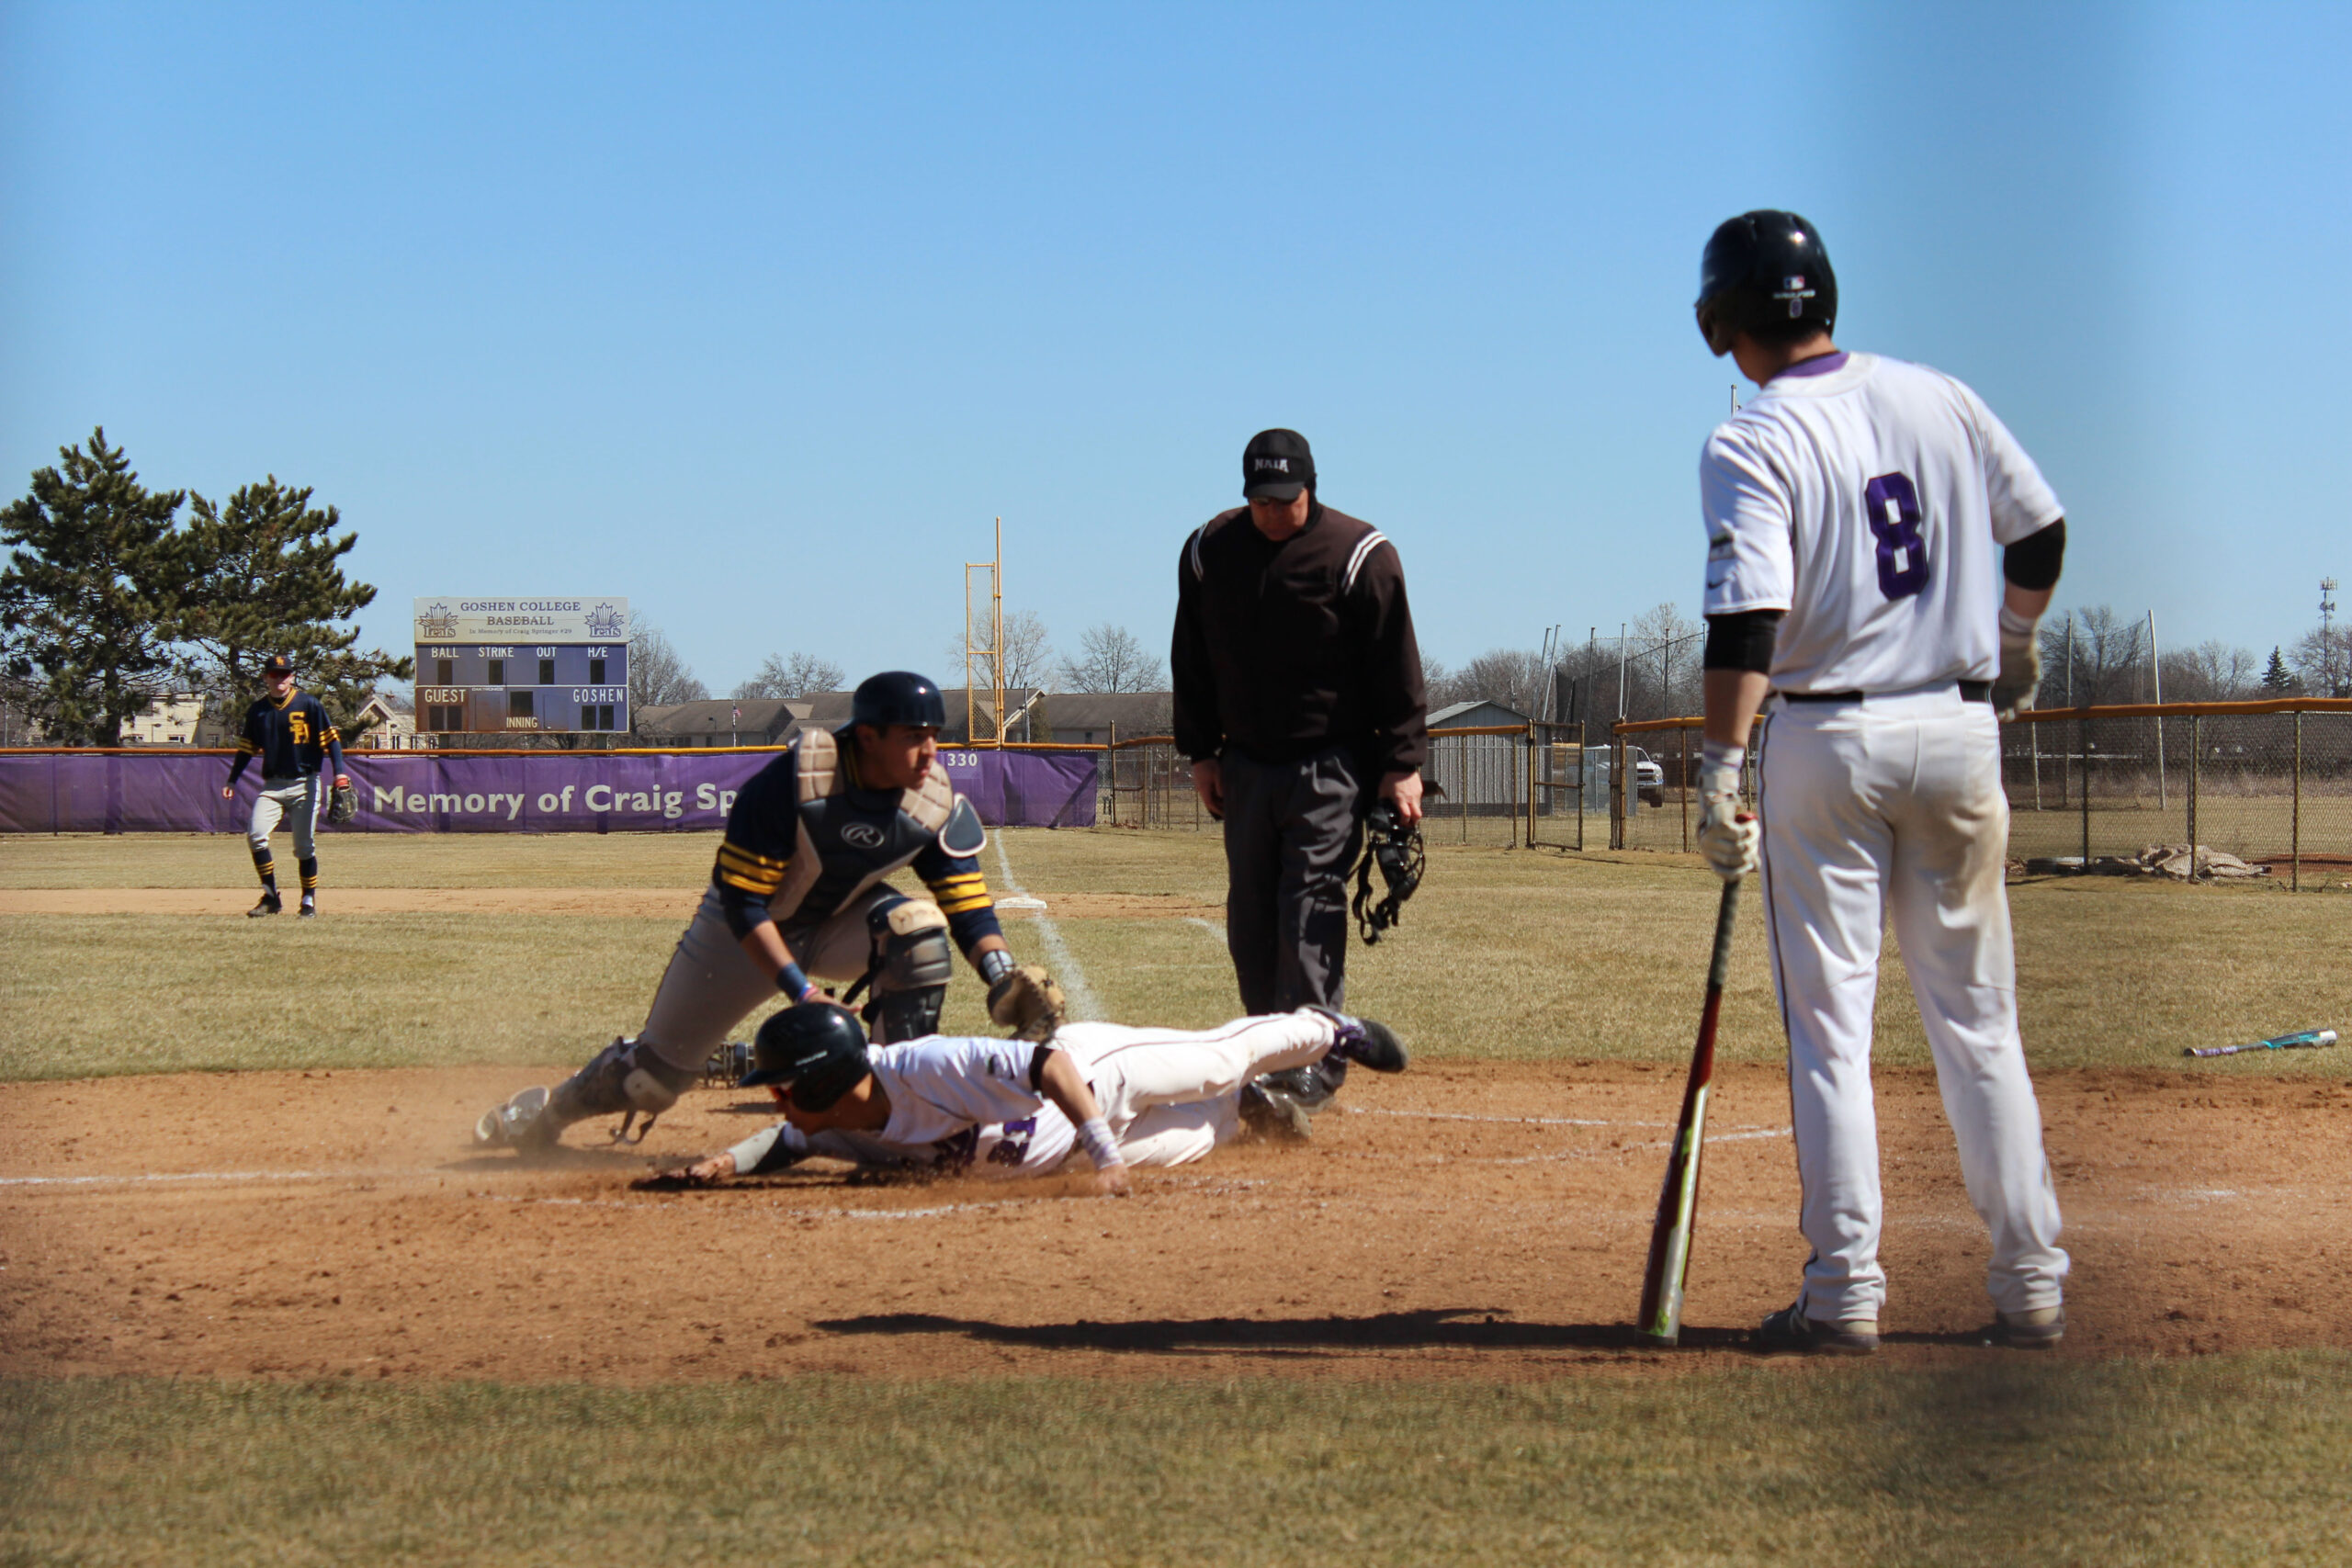 A player on the Goshen baseball team slides into home base during a game